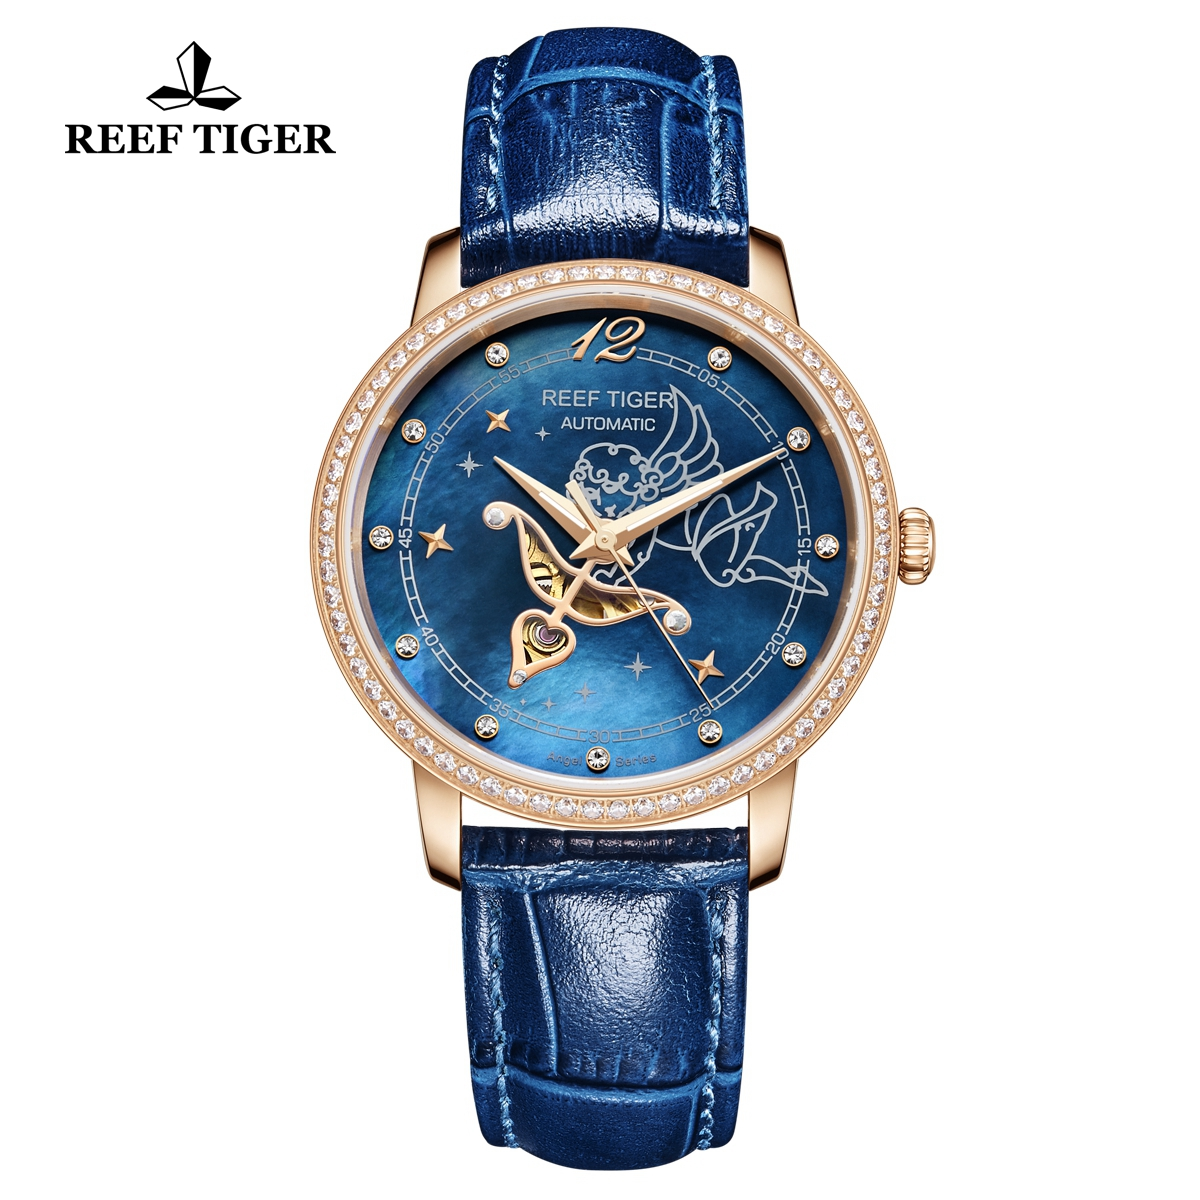 Reef Tiger Luxury Diamonds Watch Blue MOP Dial Automatic Rose Gold Lady Watch RGA1550-PLLD